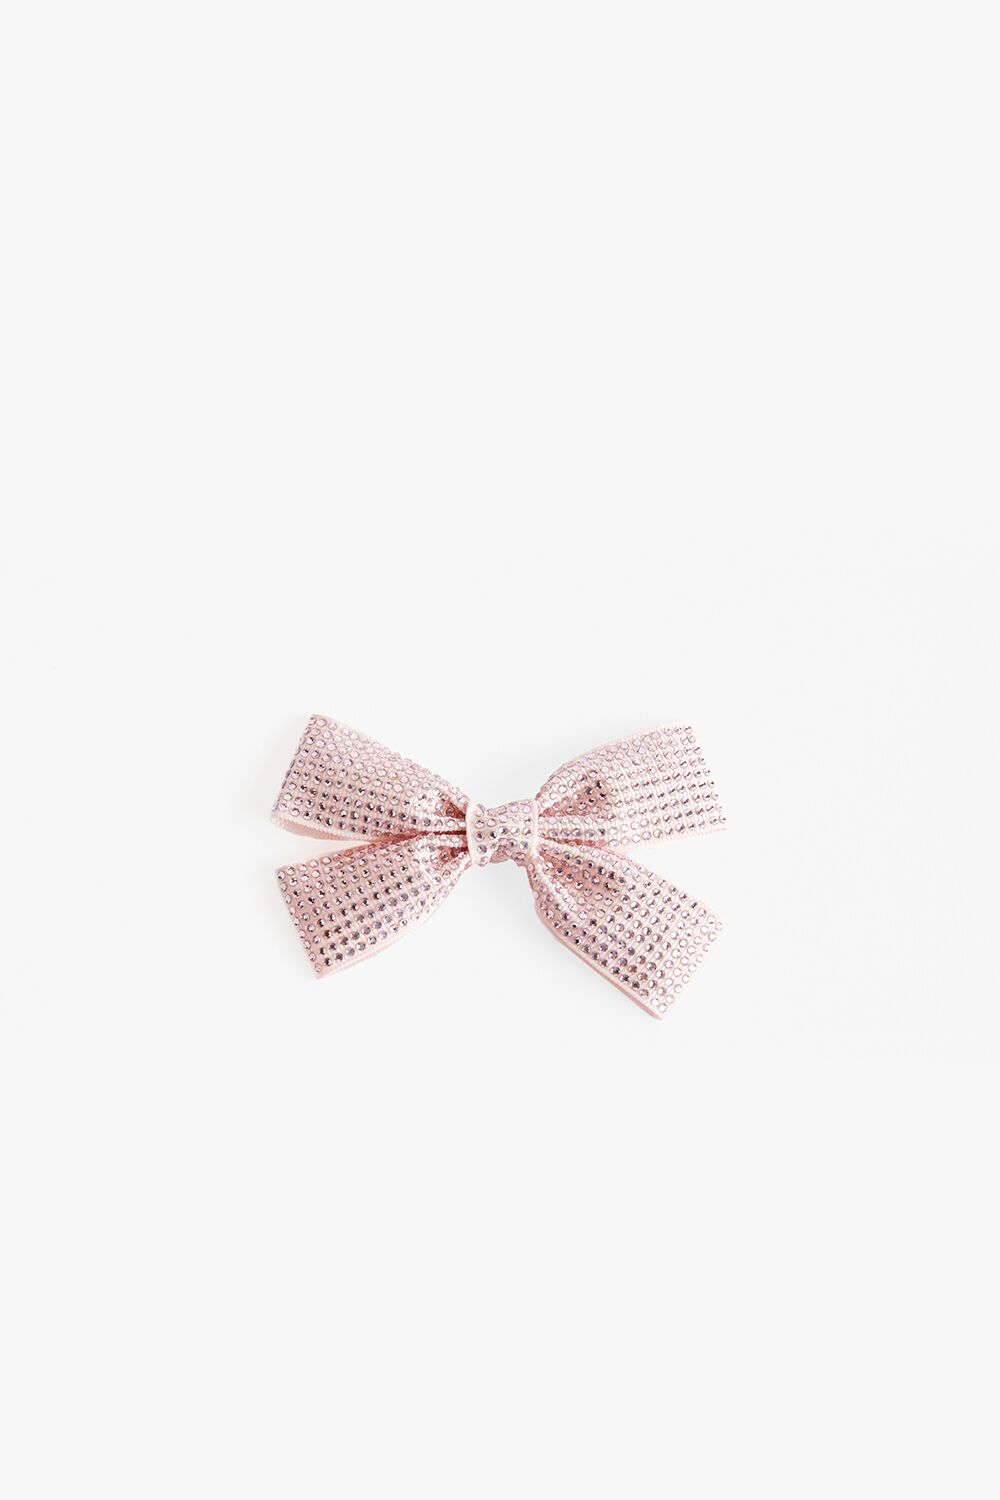 PINK DIAMANTE BOW in colour PARADISE PINK